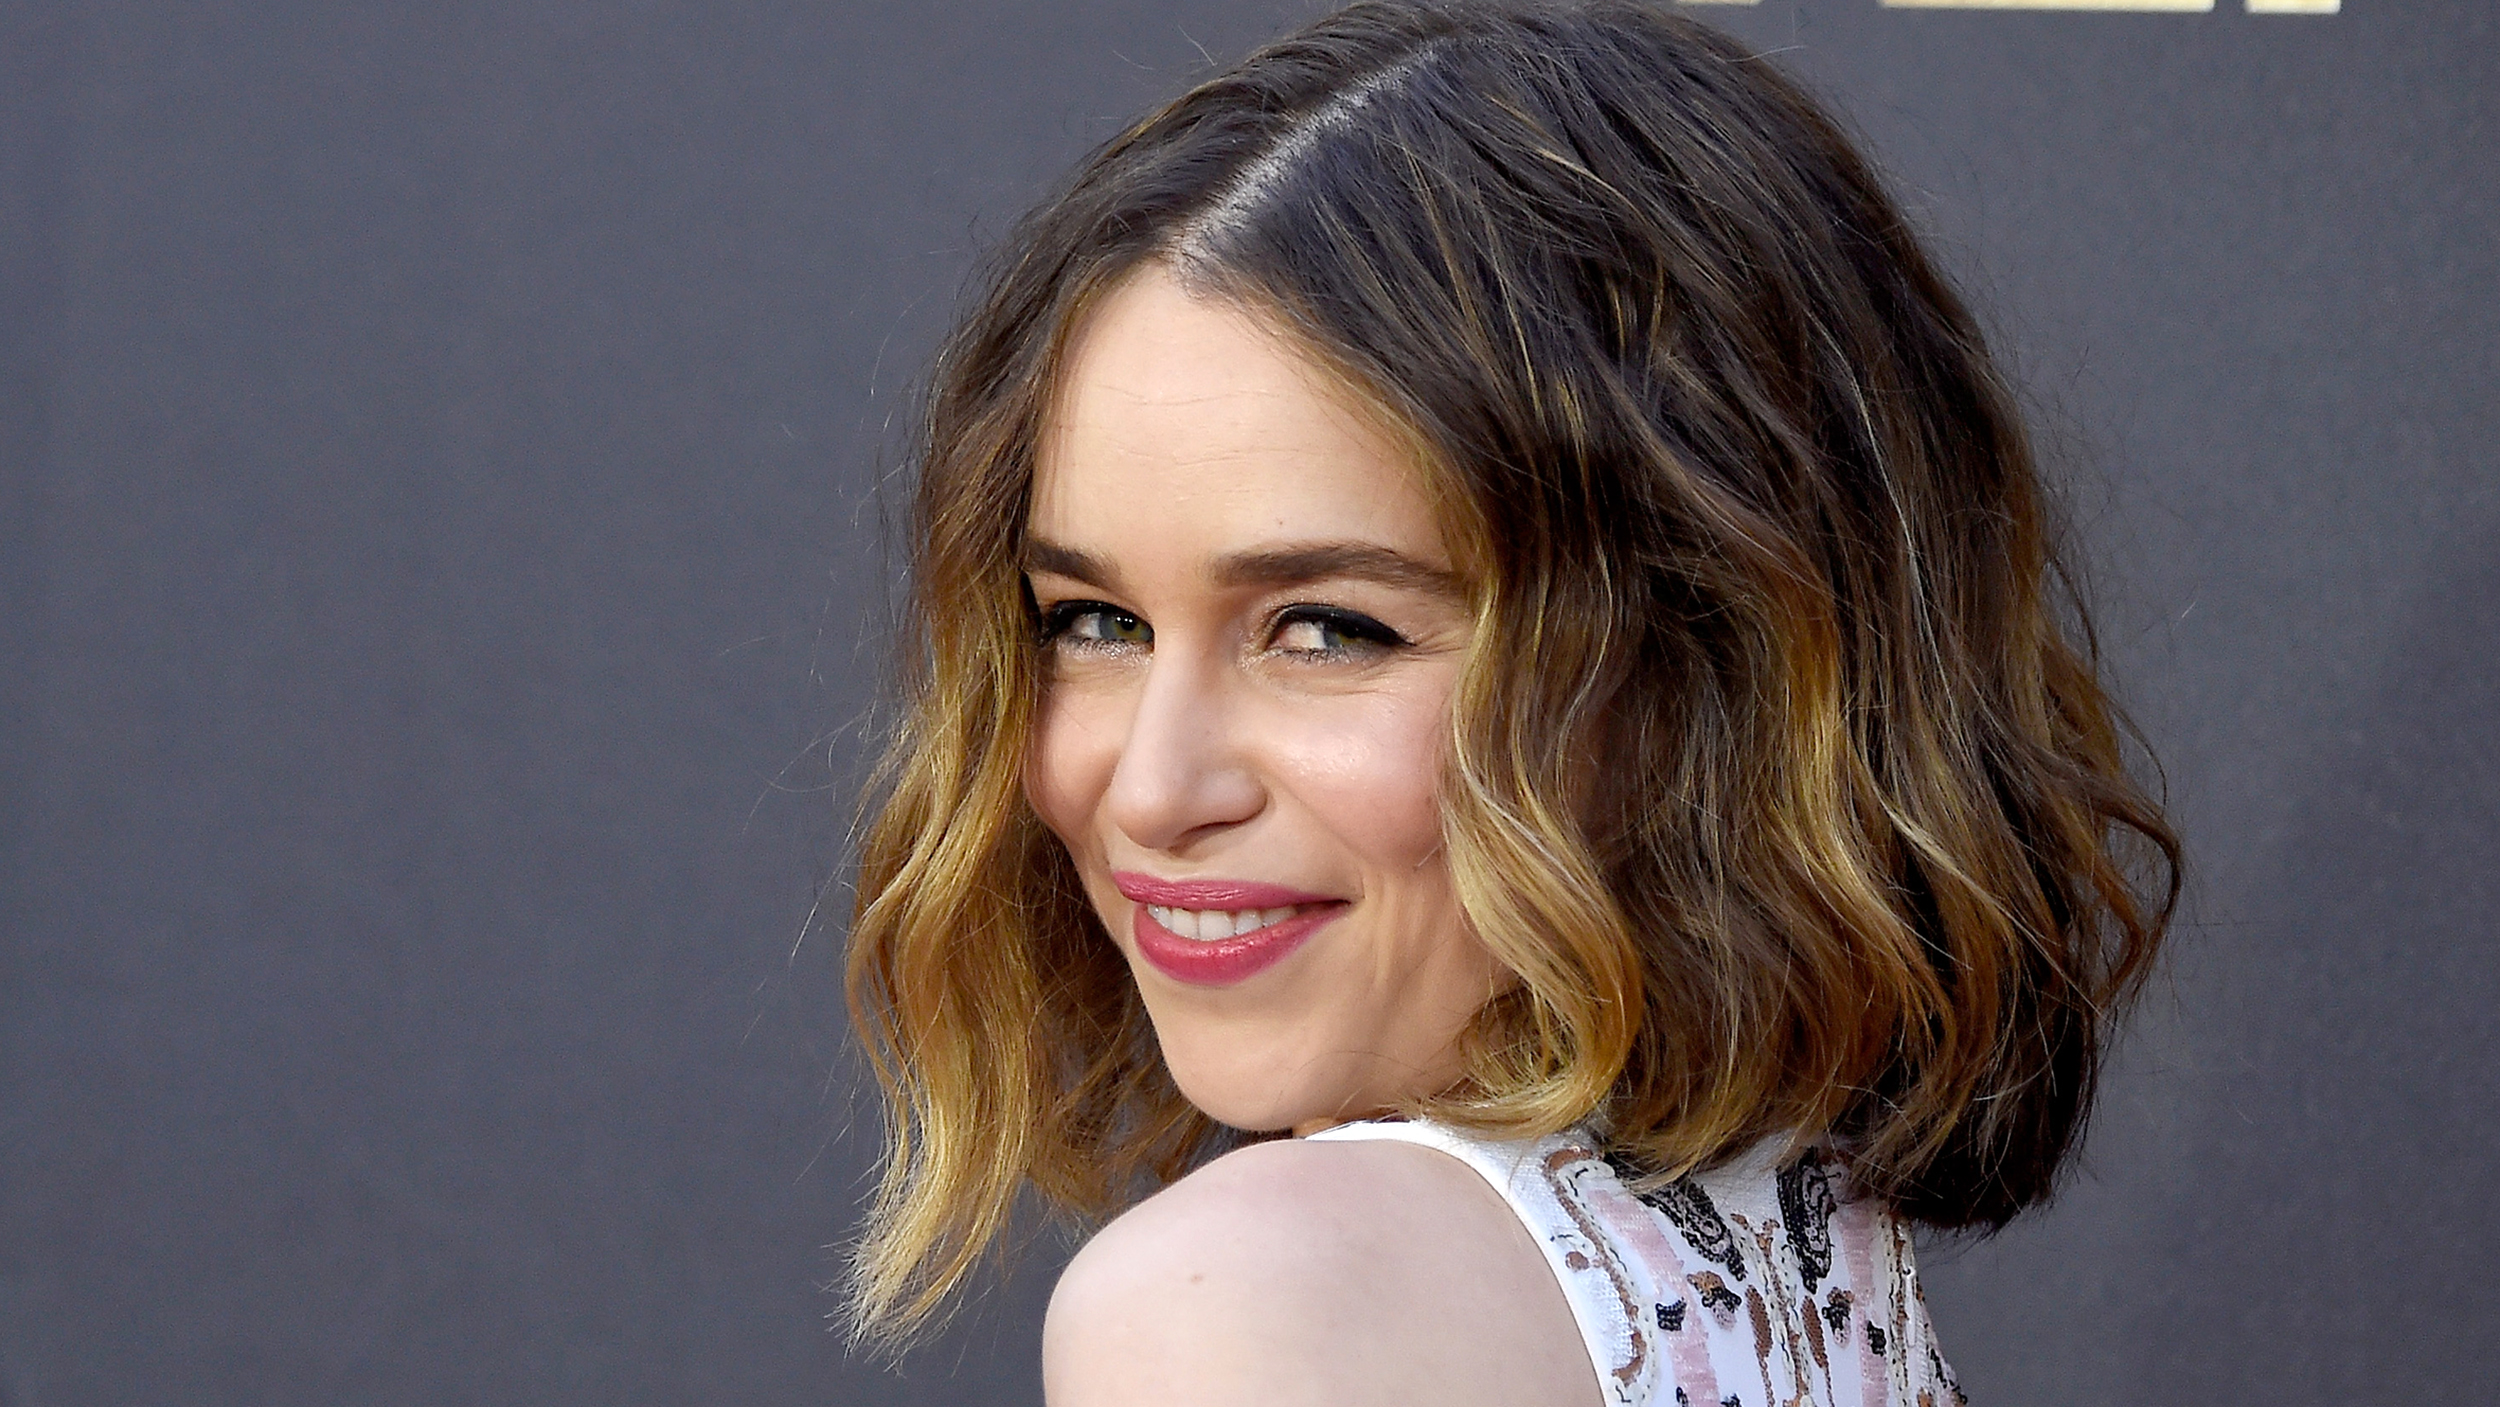 Emilia Clarke prononciation